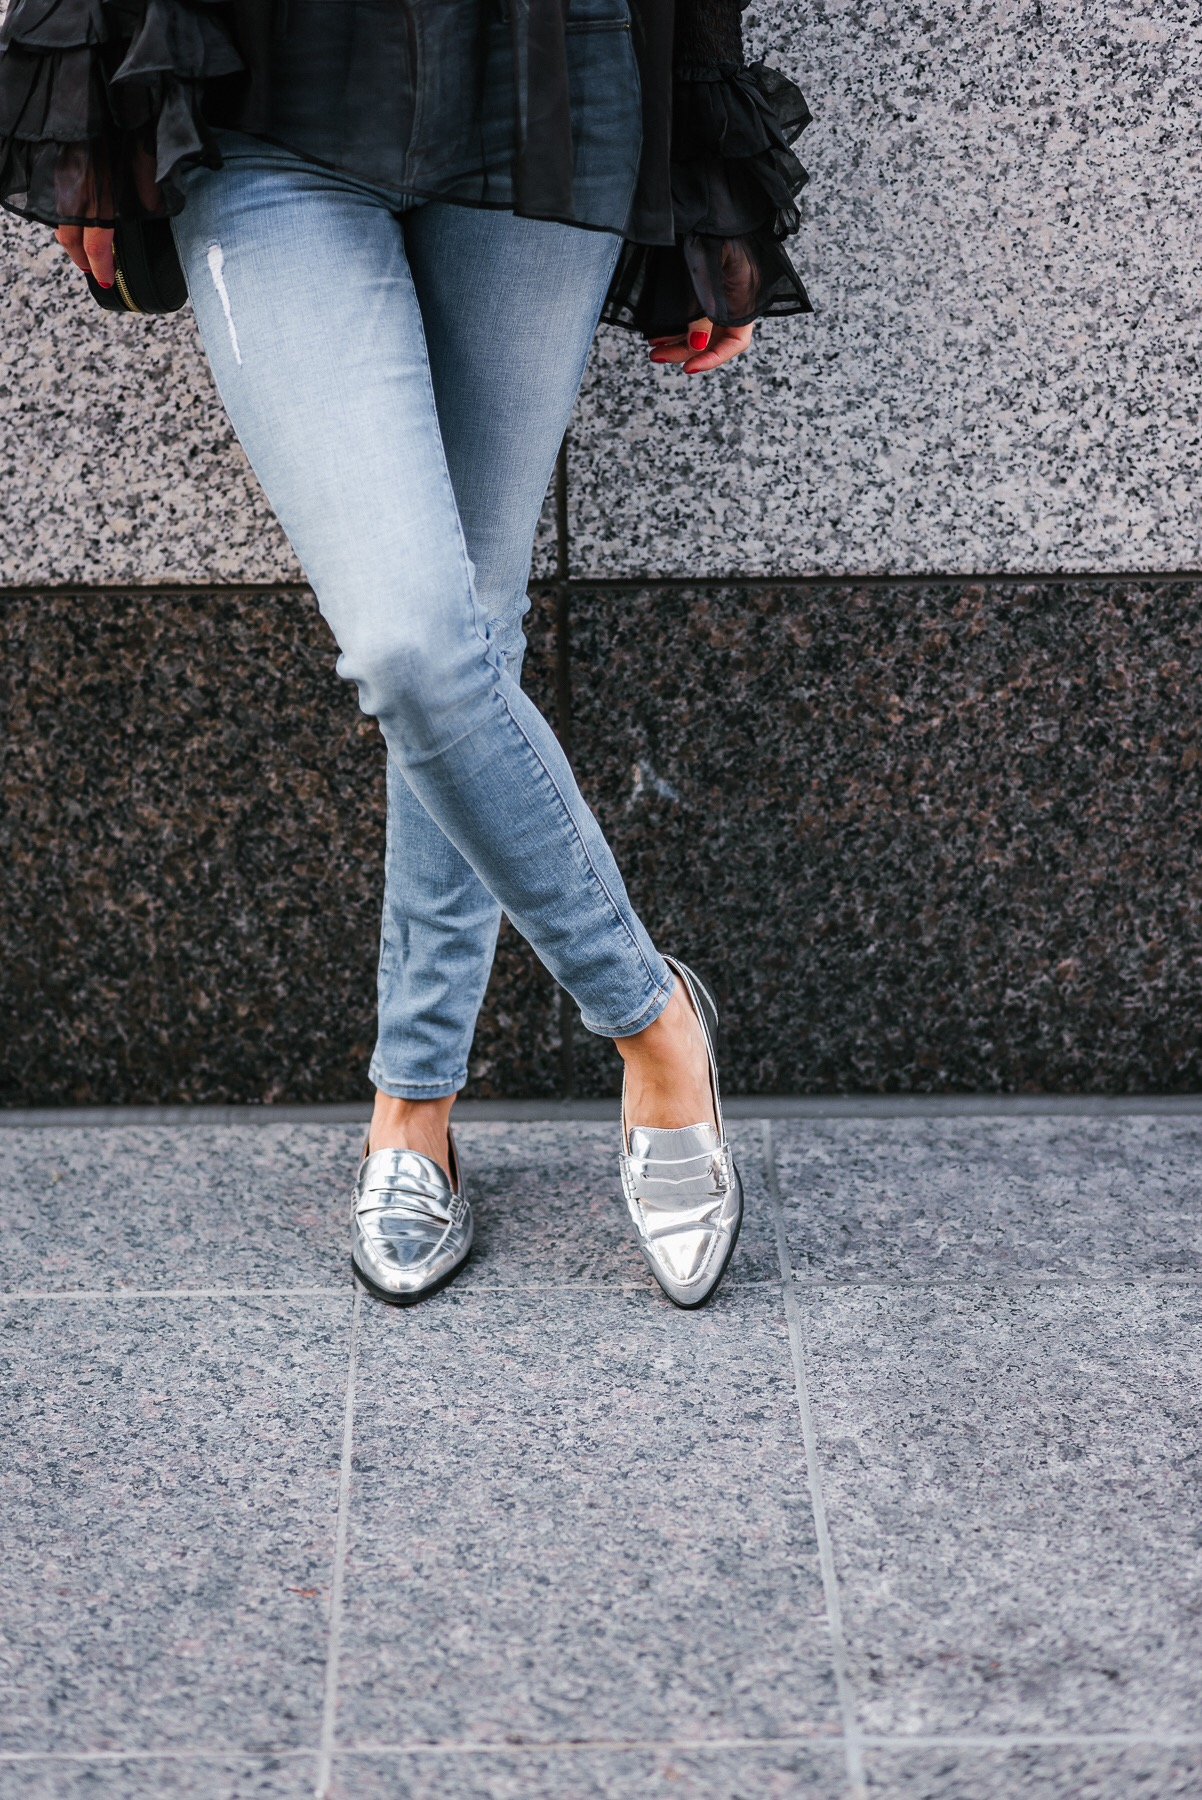 Street style blogger wearing silver Michael Kors shoes and DSTLD denim